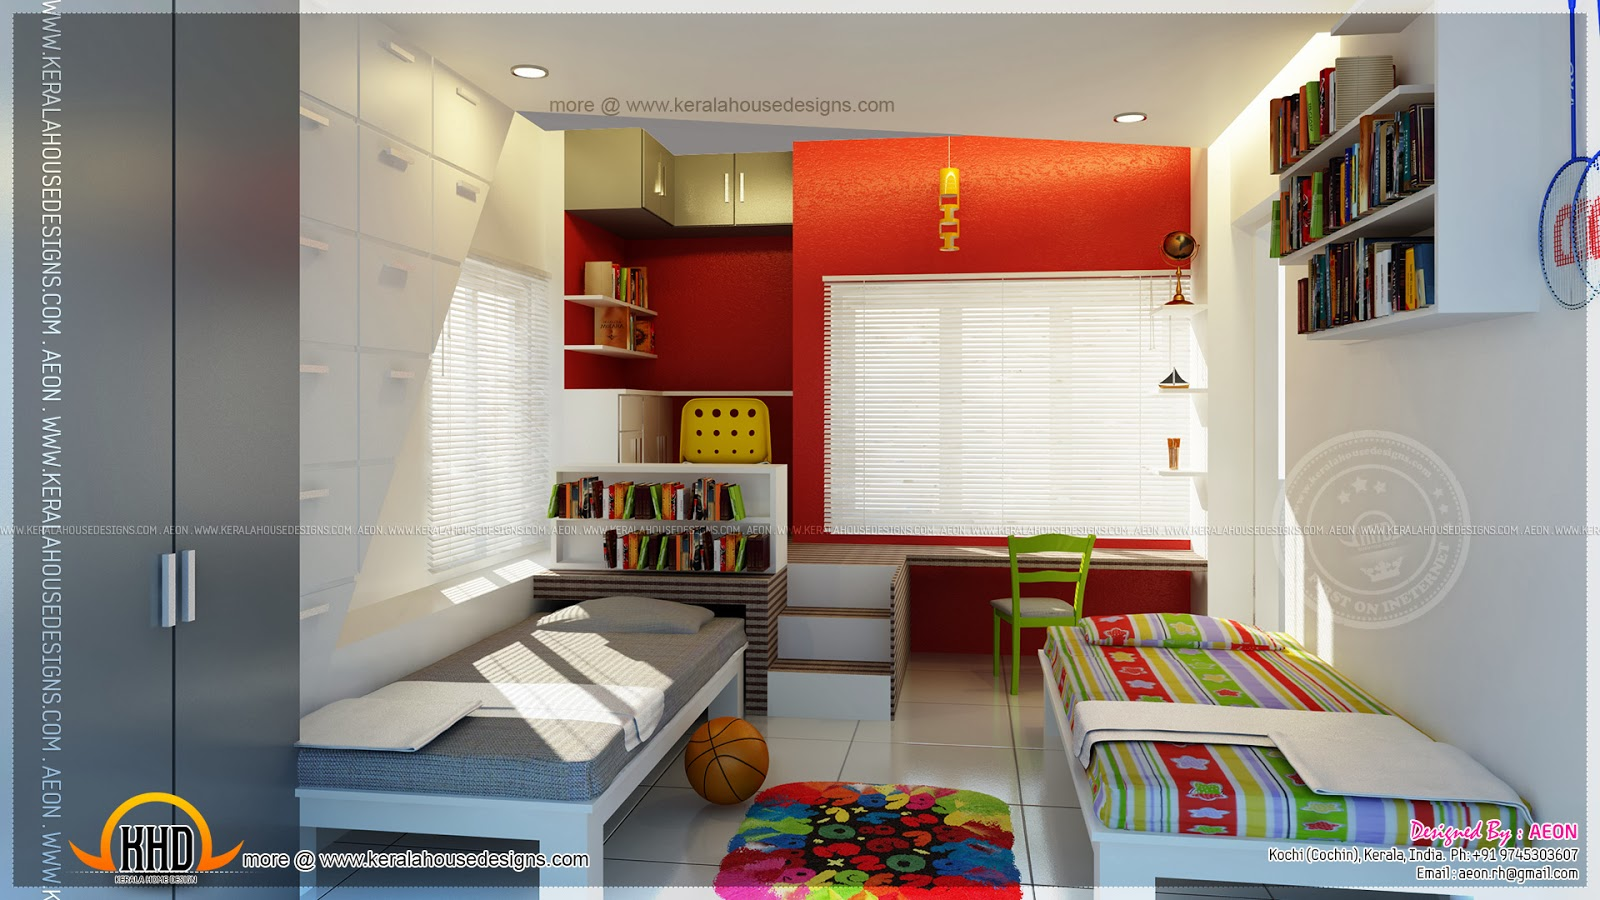 Apartment Interior Design Kerala apartment interior designsaeon, cochin - kerala home design